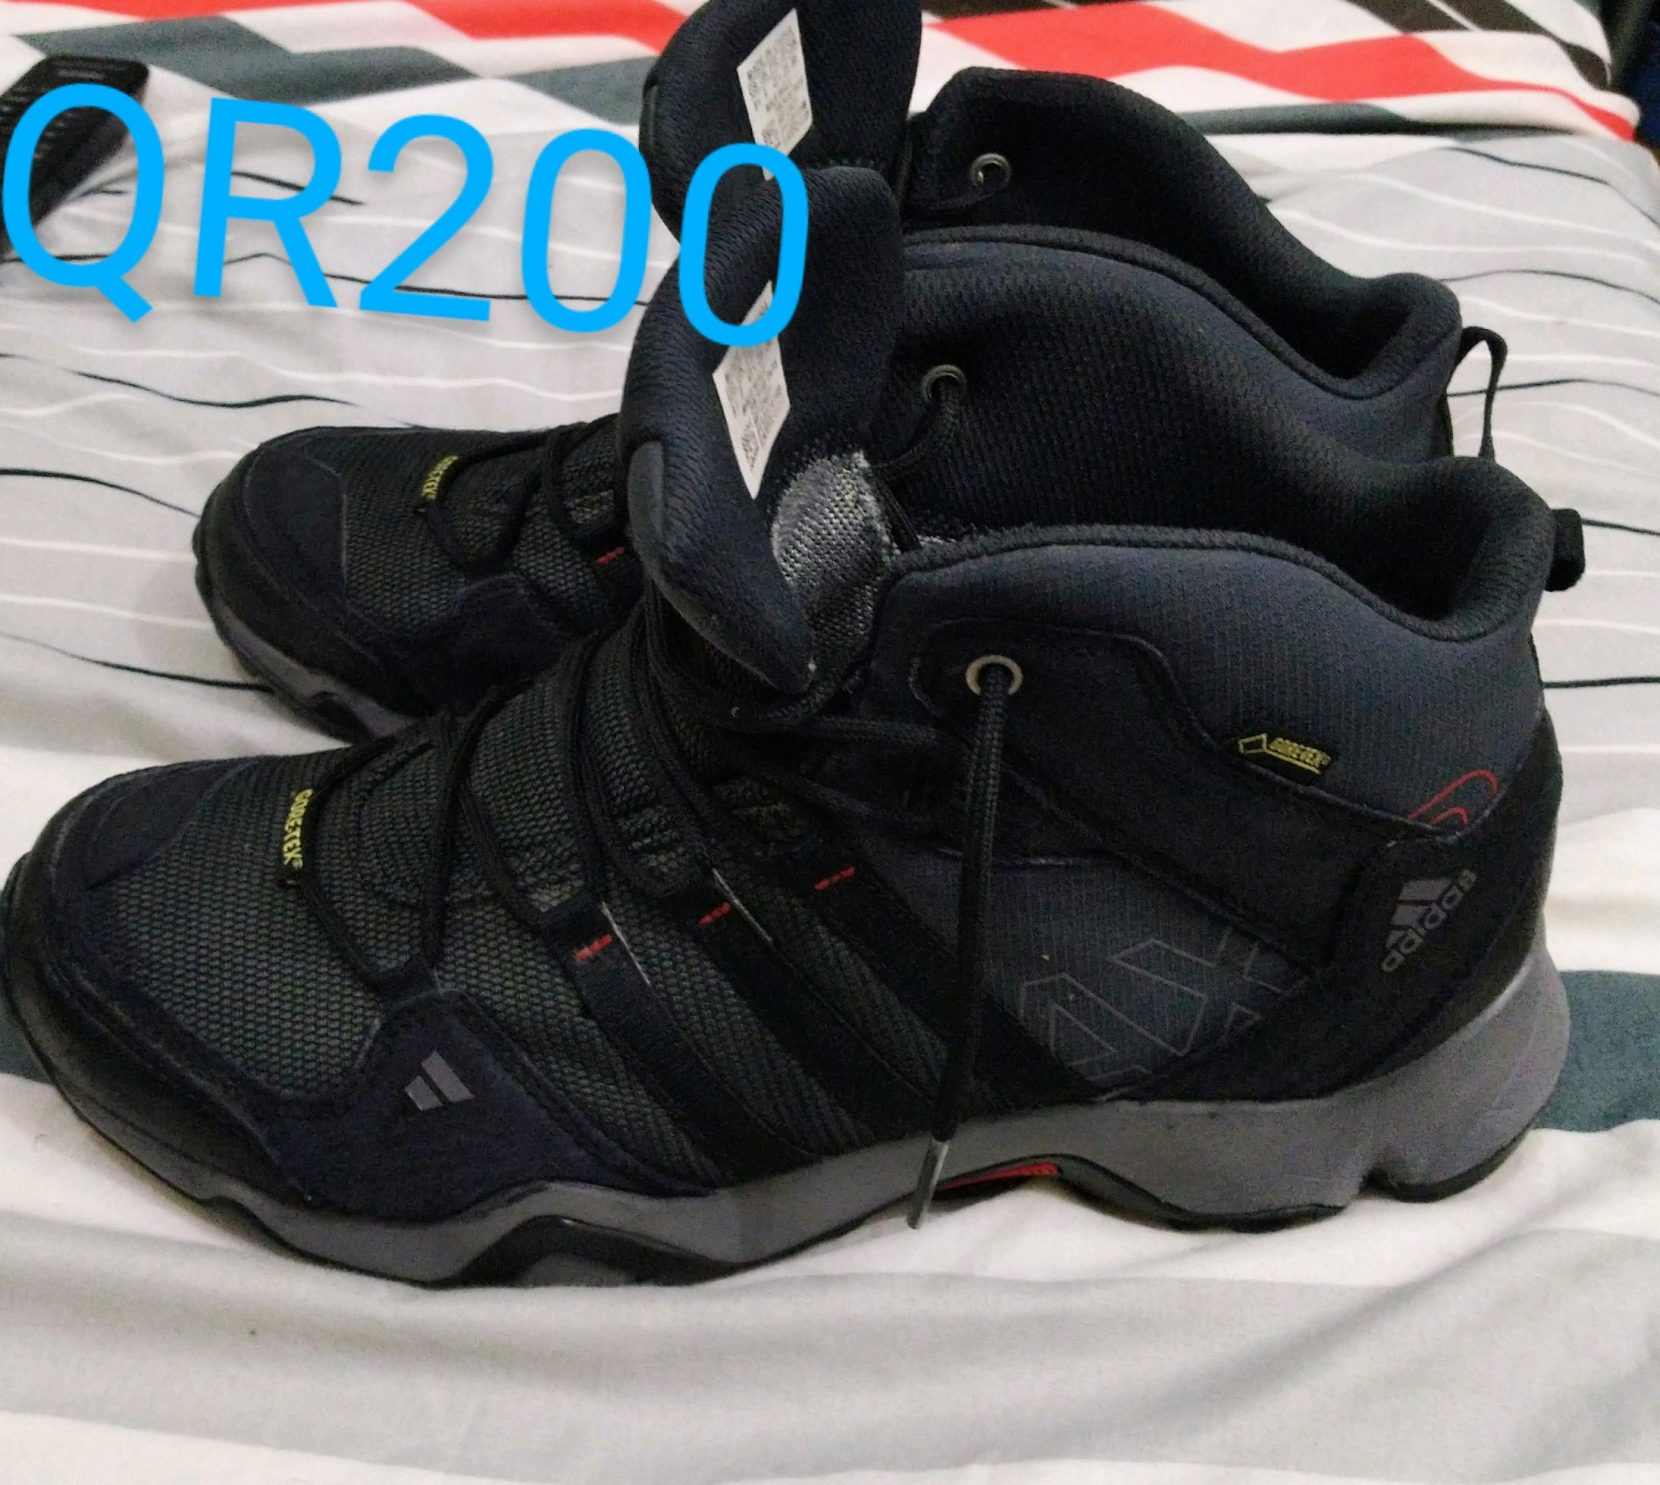 Safety Shoes & Air Purifier for Sale